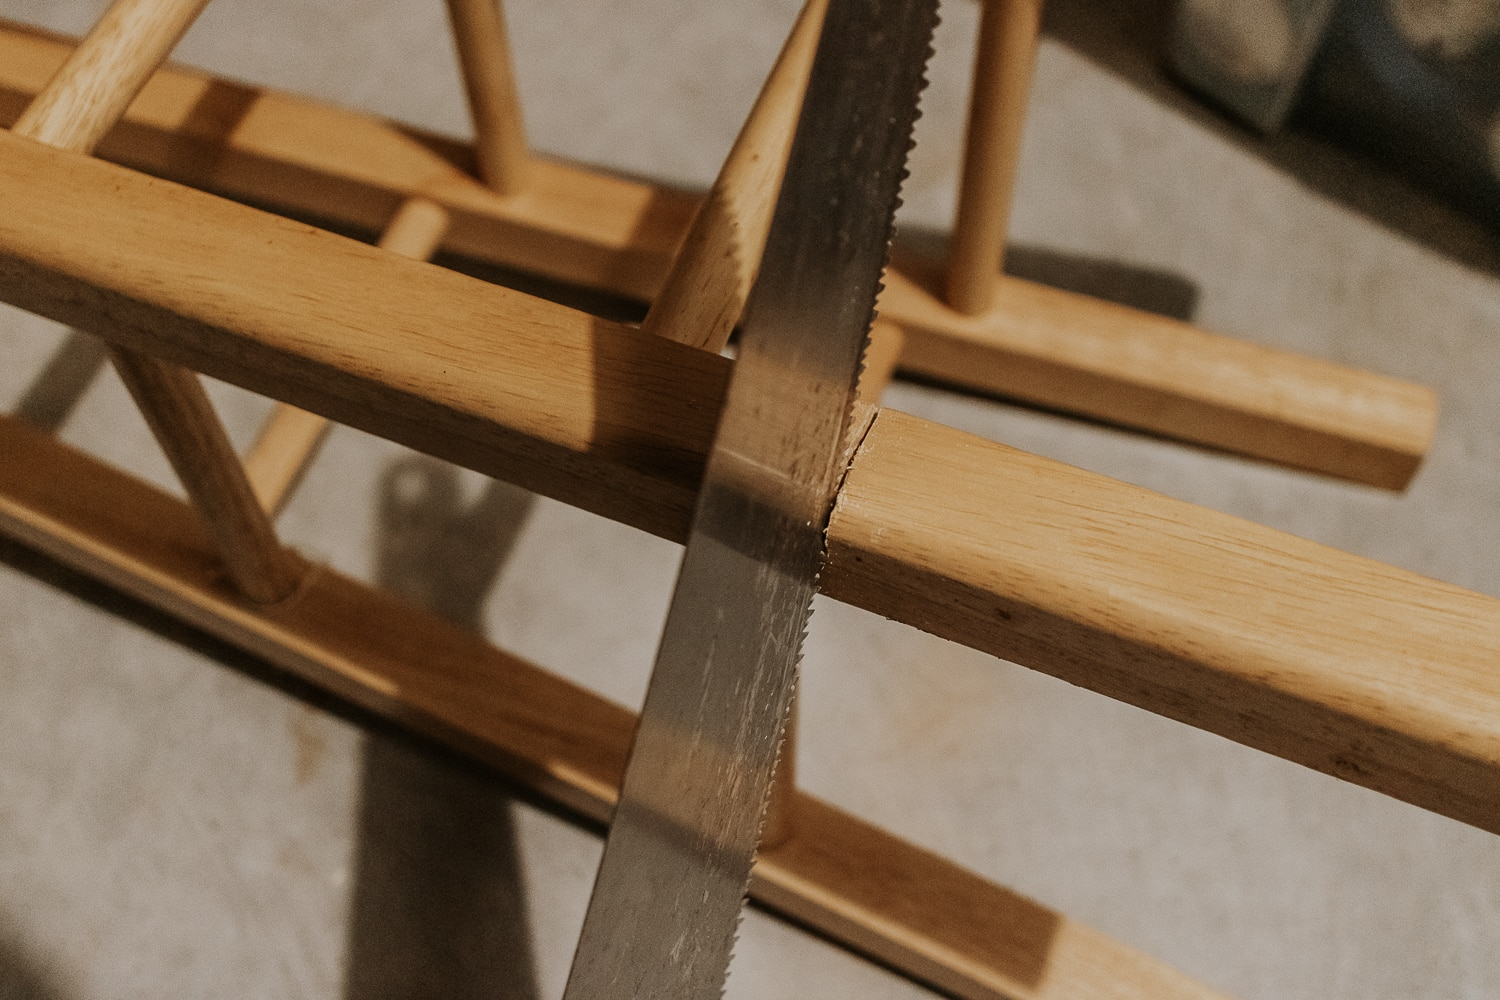 sawing the legs off a bar stool to make a side table